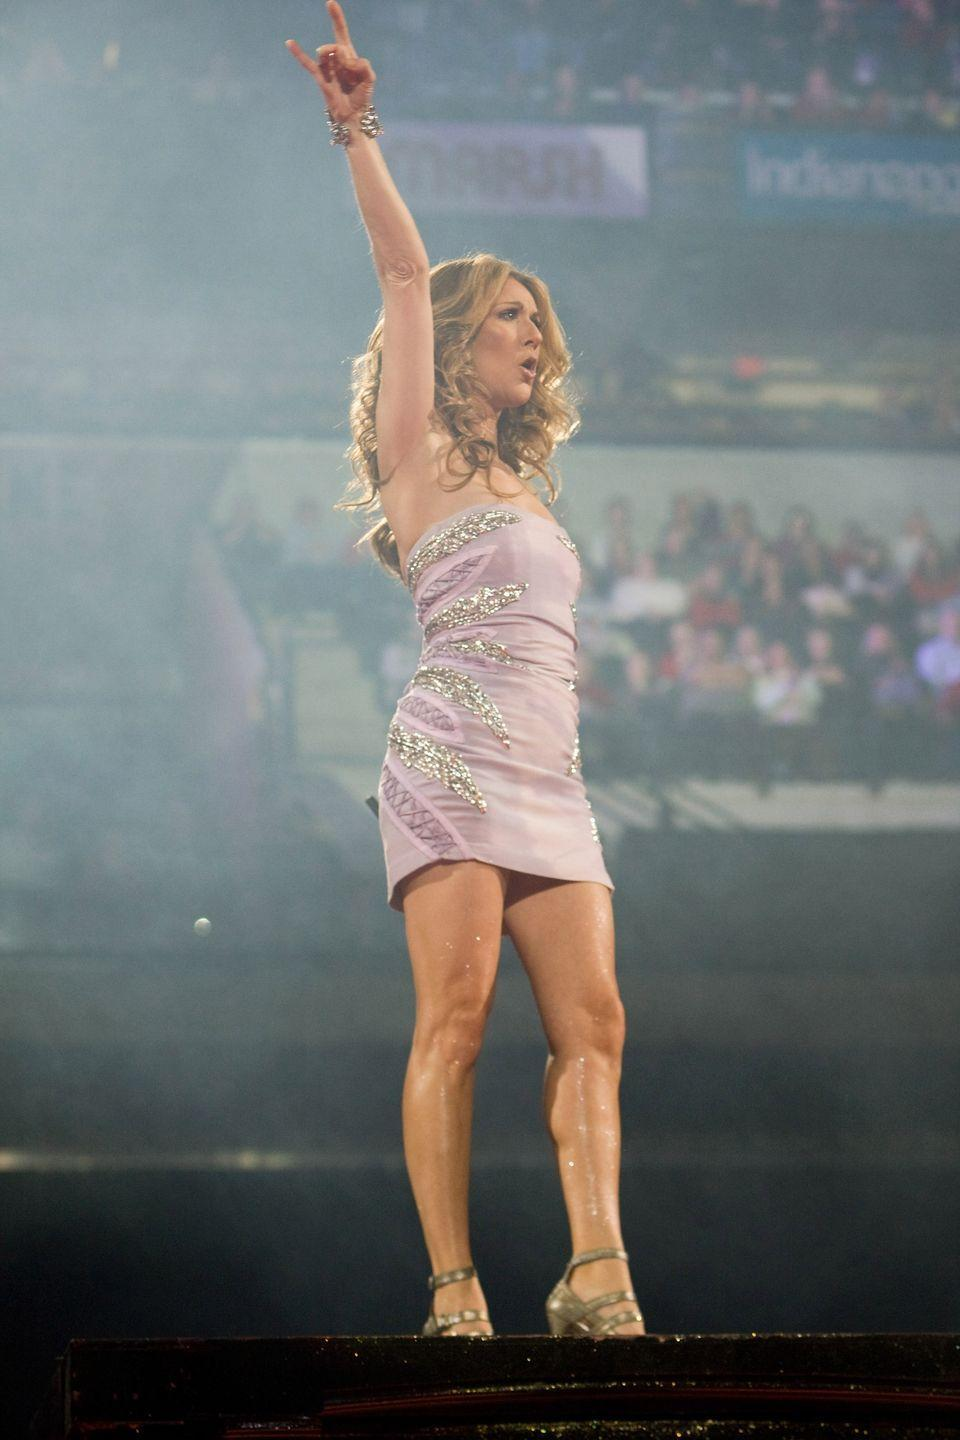 <p>Another iconic minidress moment from the megastar. This time, Dion chose a strapless lavender number with sparkly accents and strappy gold heels. </p>